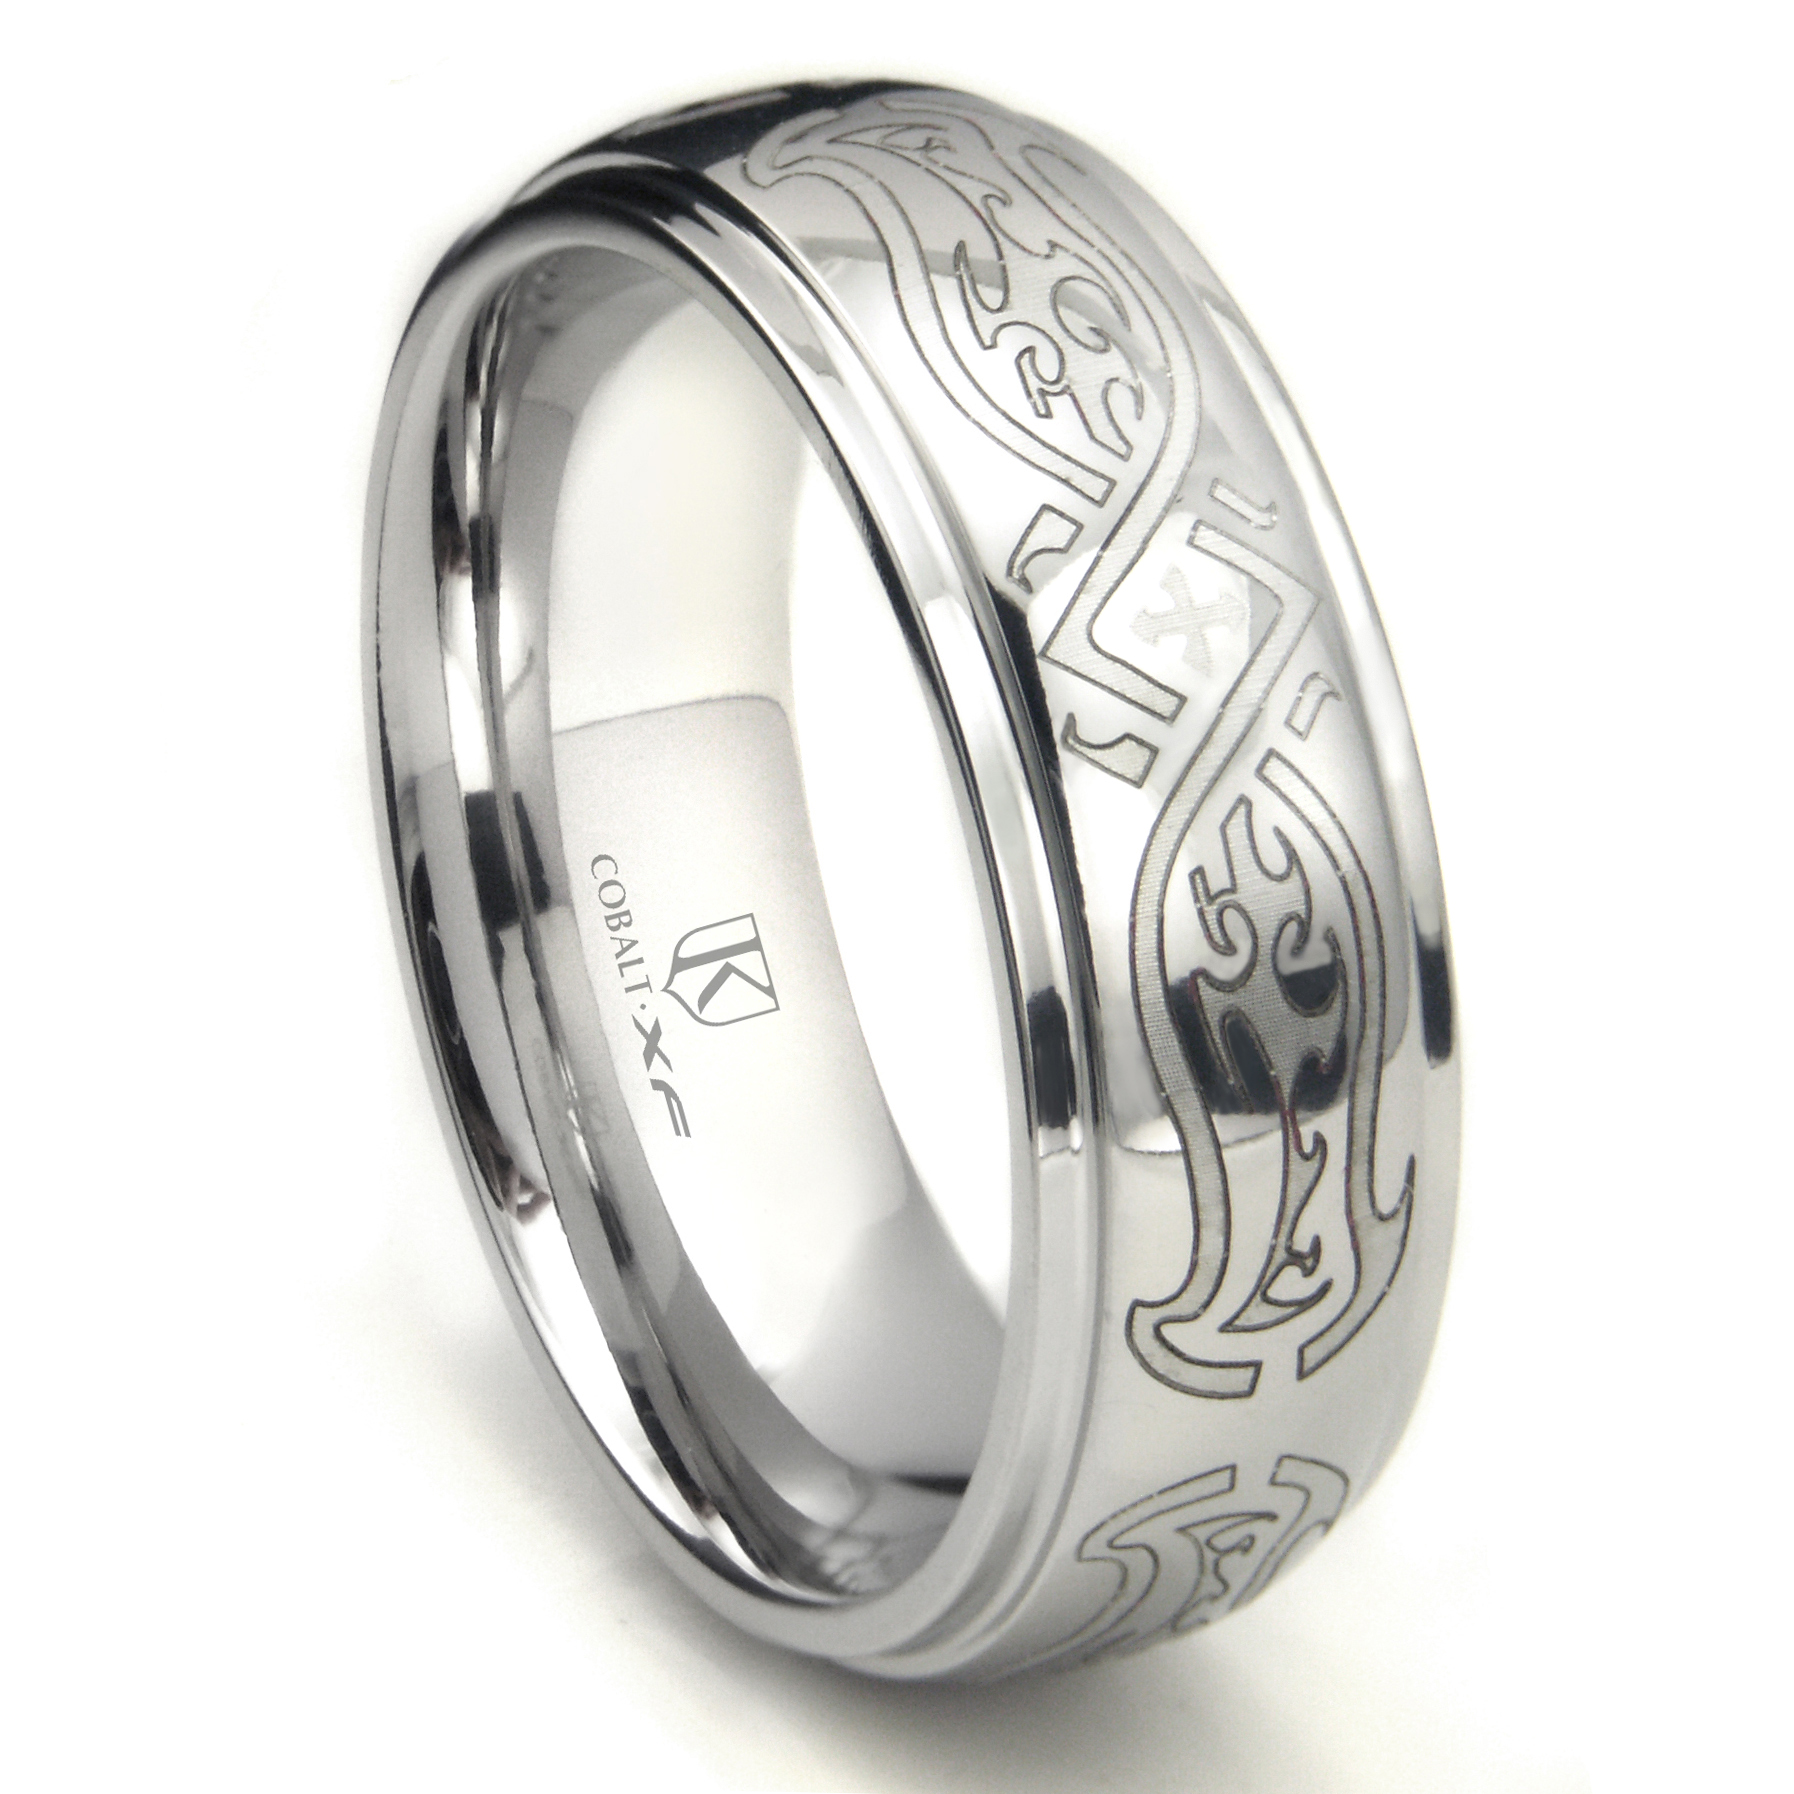 Invigorating Cobalt Xf Chrome Celtic Wedding Band Ring Celtic Wedding Rings Argos Celtic Wedding Rings Ireland wedding rings Celtic Wedding Rings